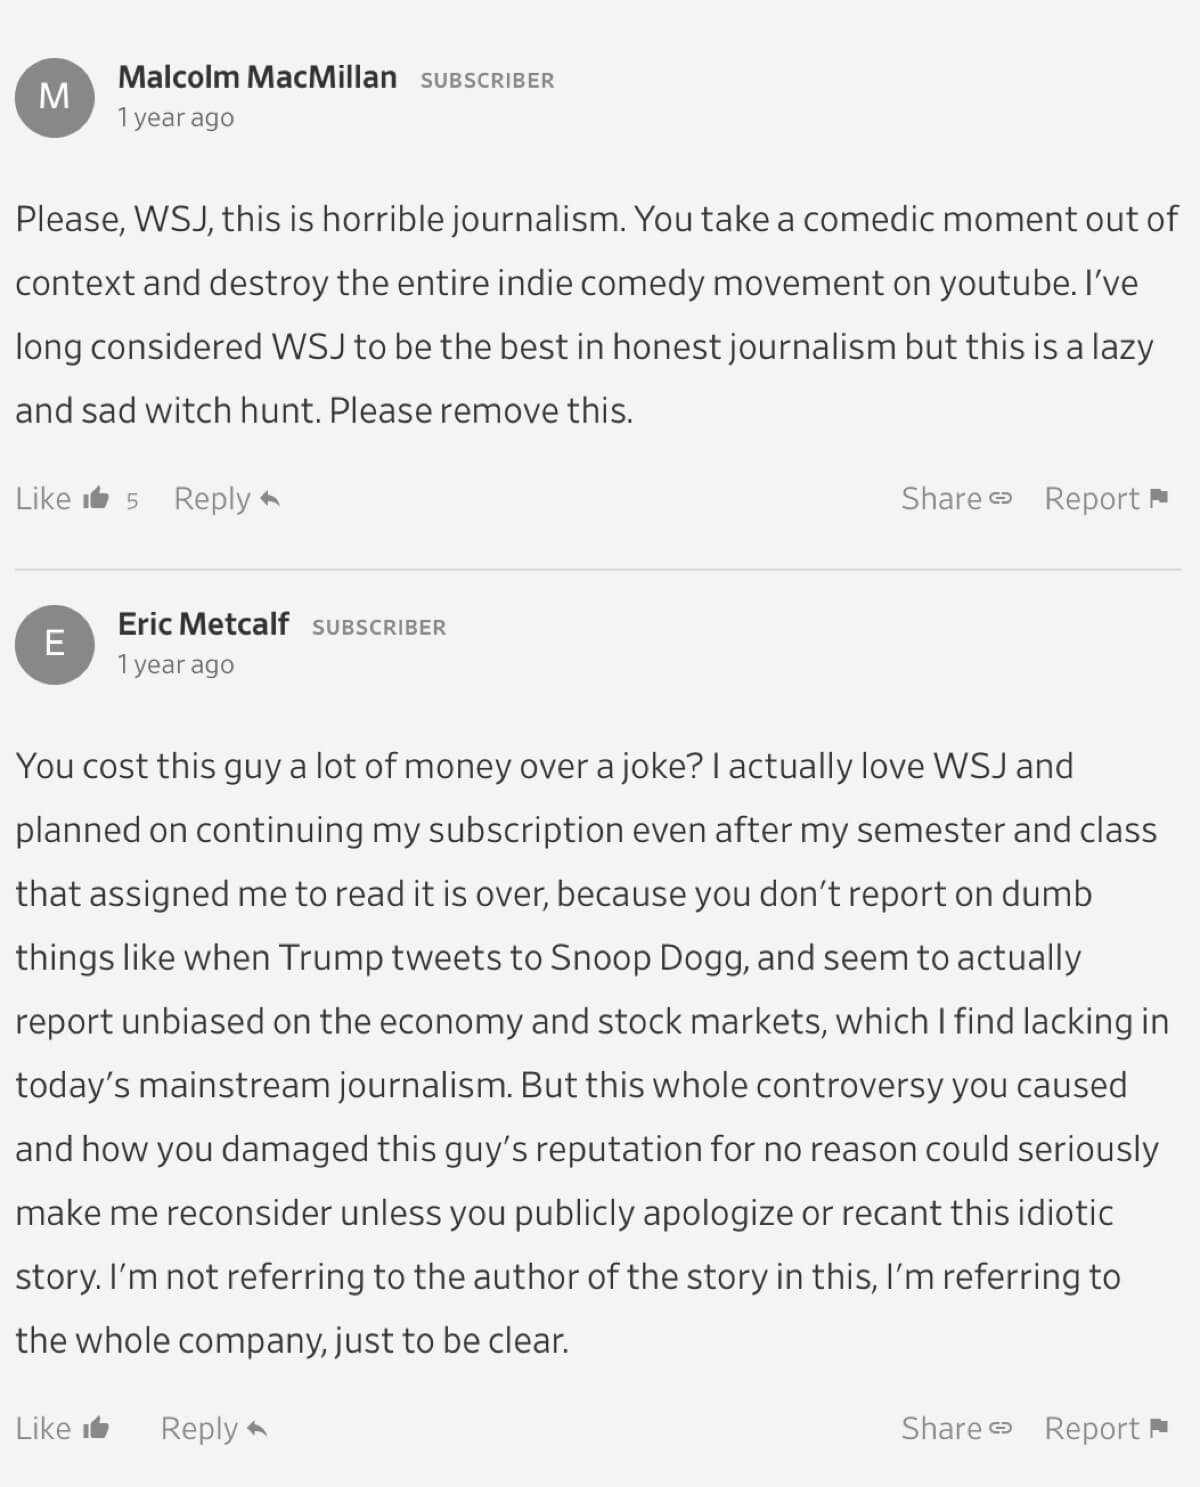 A critical comment on The Wall Street Journal's article about PewDiePie.